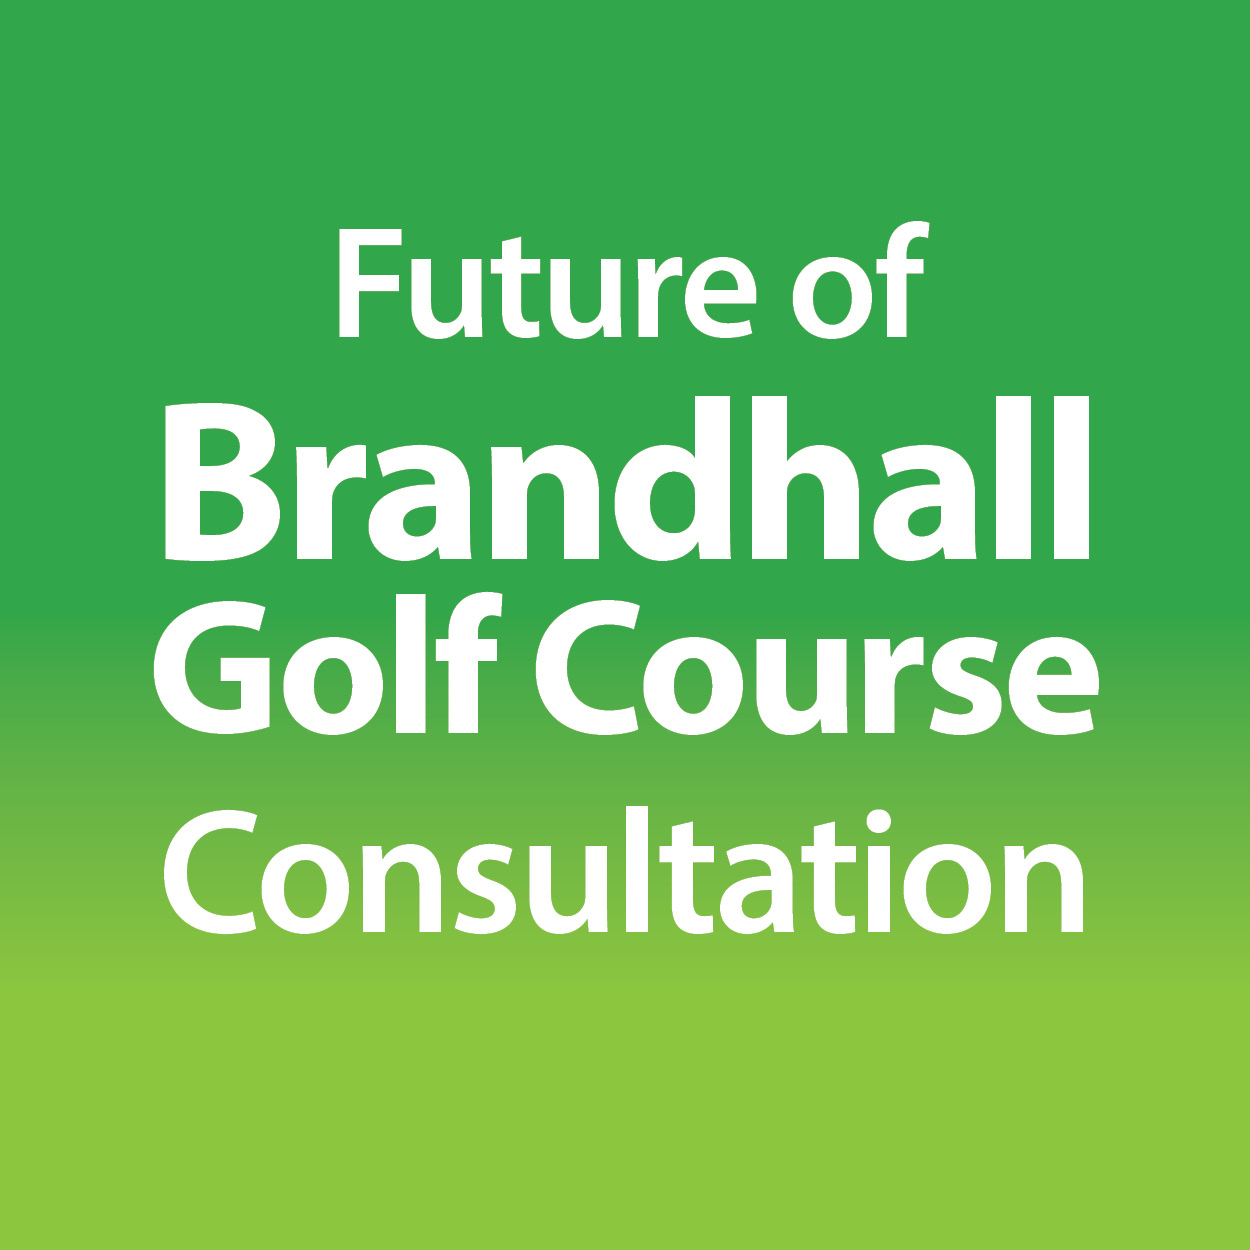 Future of Brandhall Golf Course consultation